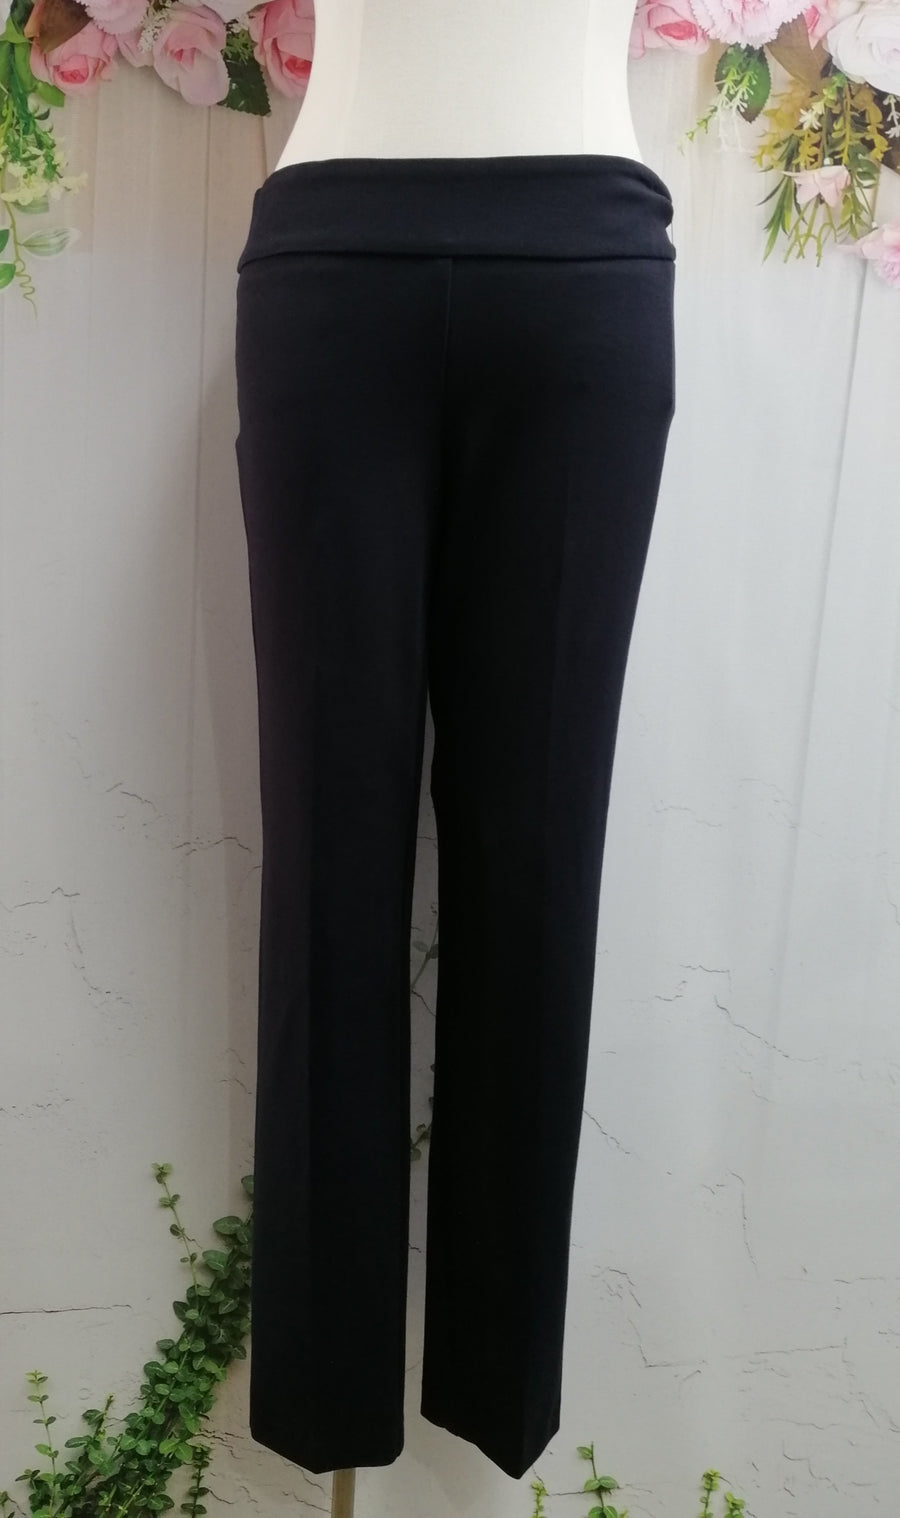 Up Tapered Pants (746) - Black - Fashion Focus